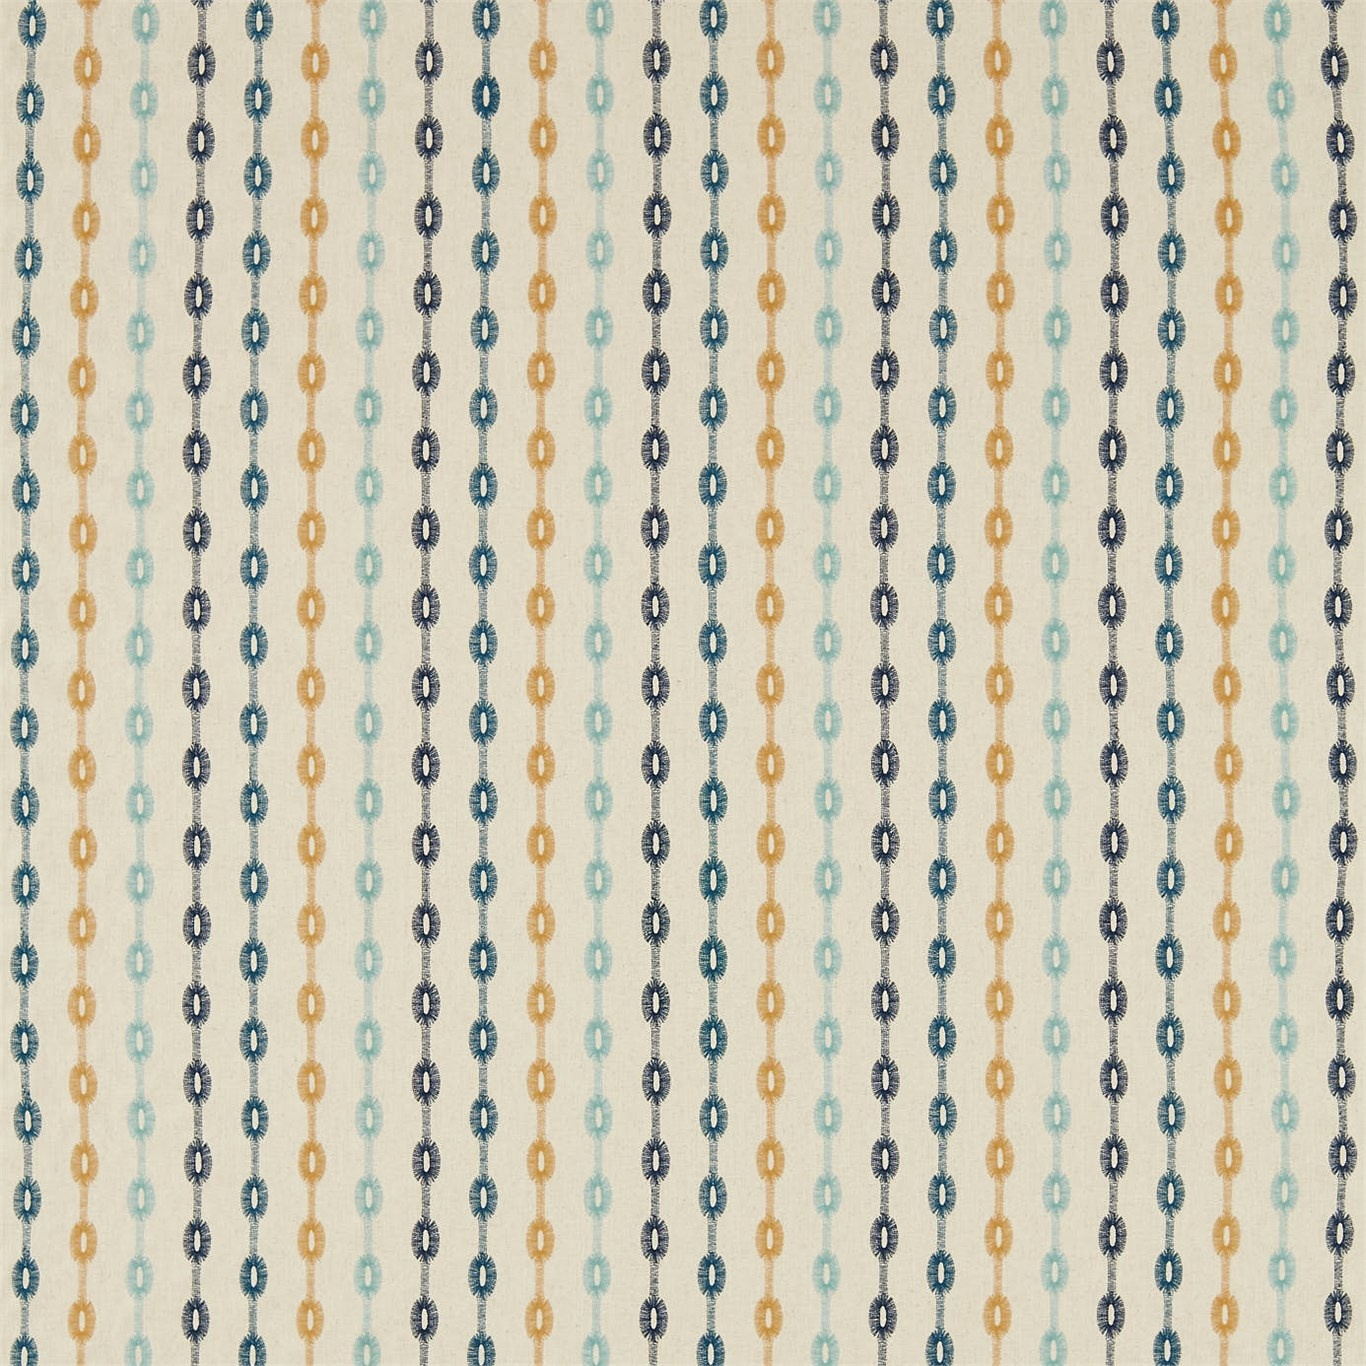 Image of Sanderson Home Shaker Stripe Dijon Curtain Fabric 235889